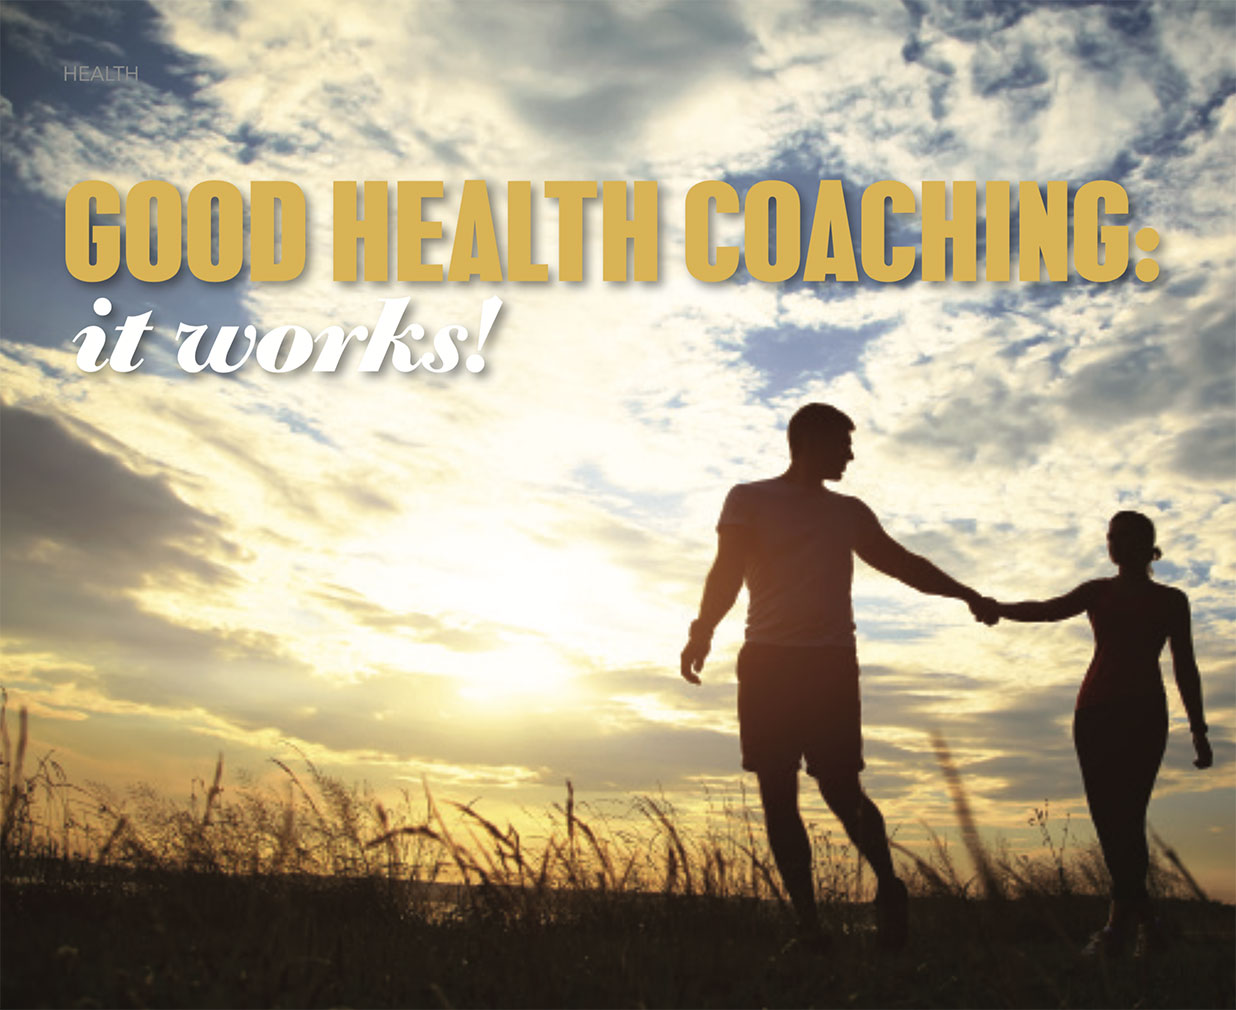 Good Health Coaching